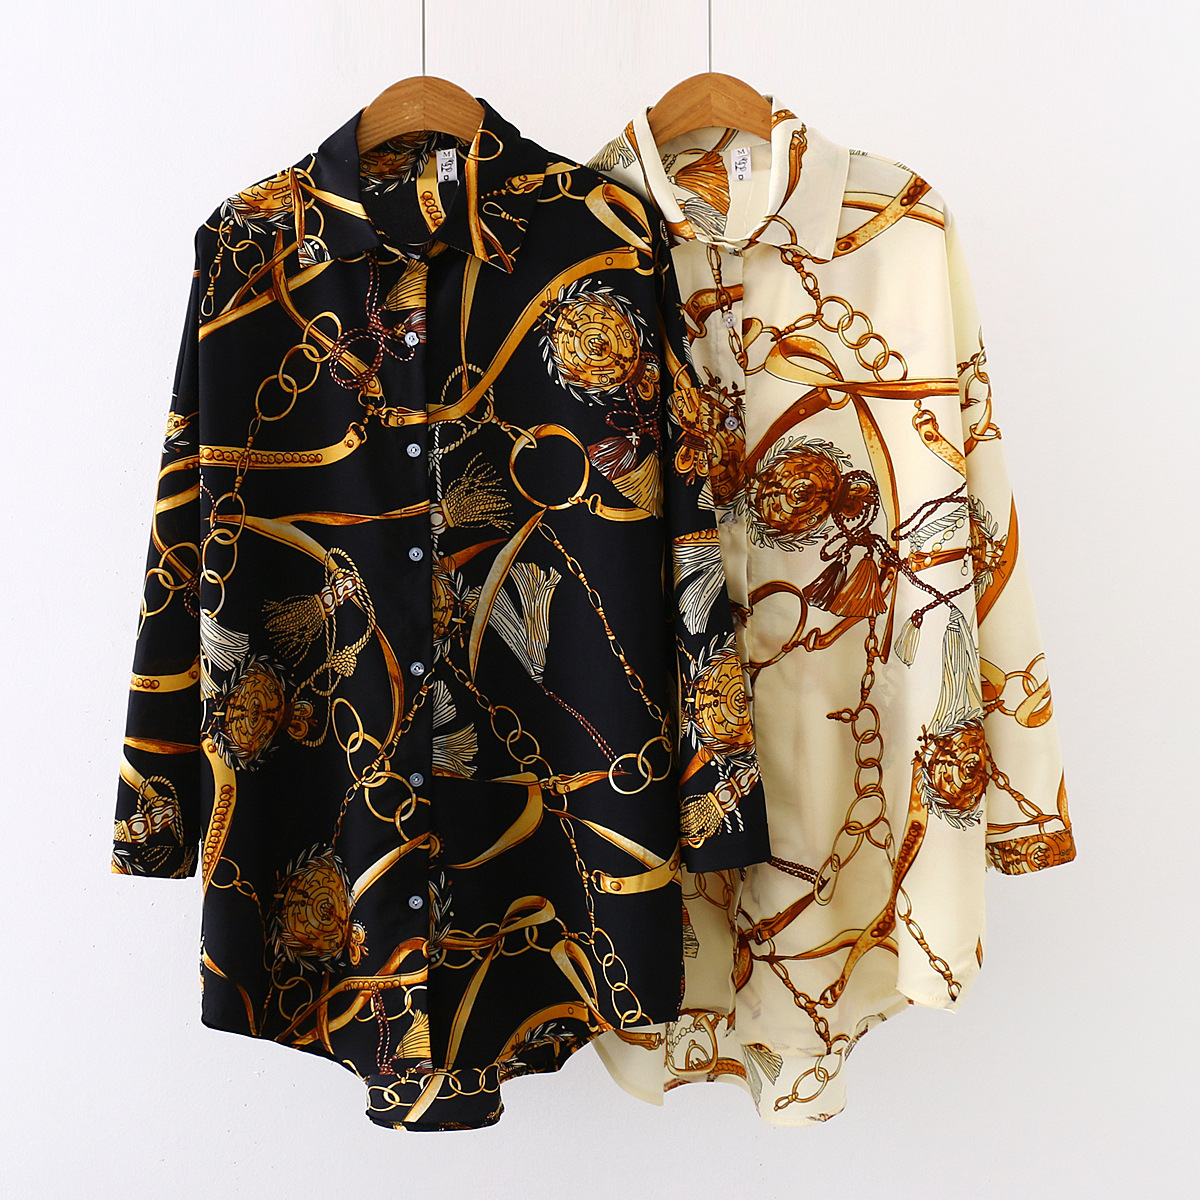 Breathable Loose Collared Chiffon Button-Up Long Sleeves with Gold Vintage Details for Classy Looks